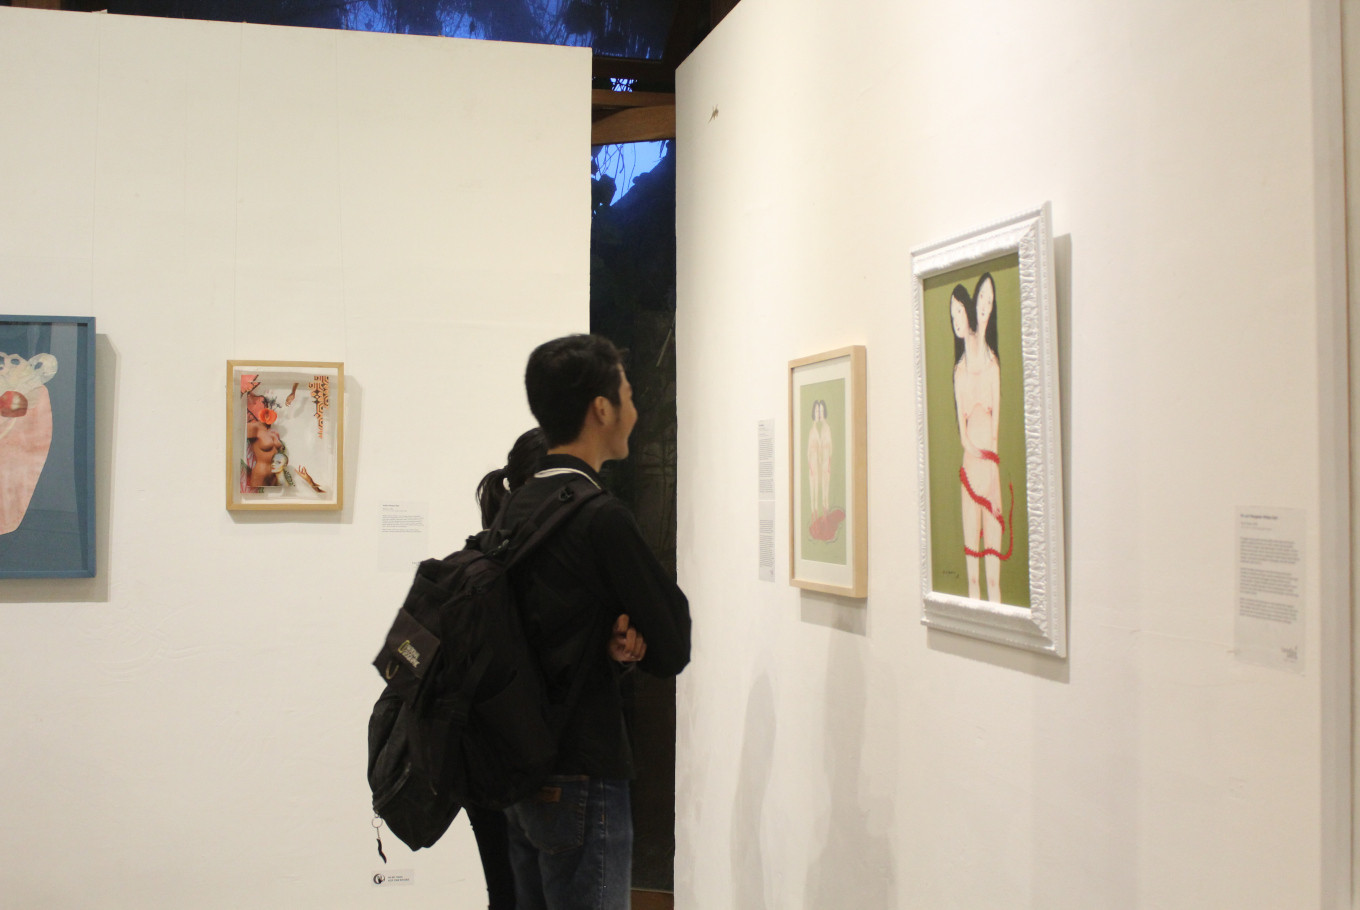 Tanda Seru! exhibition highlights women's emancipation, gender equality